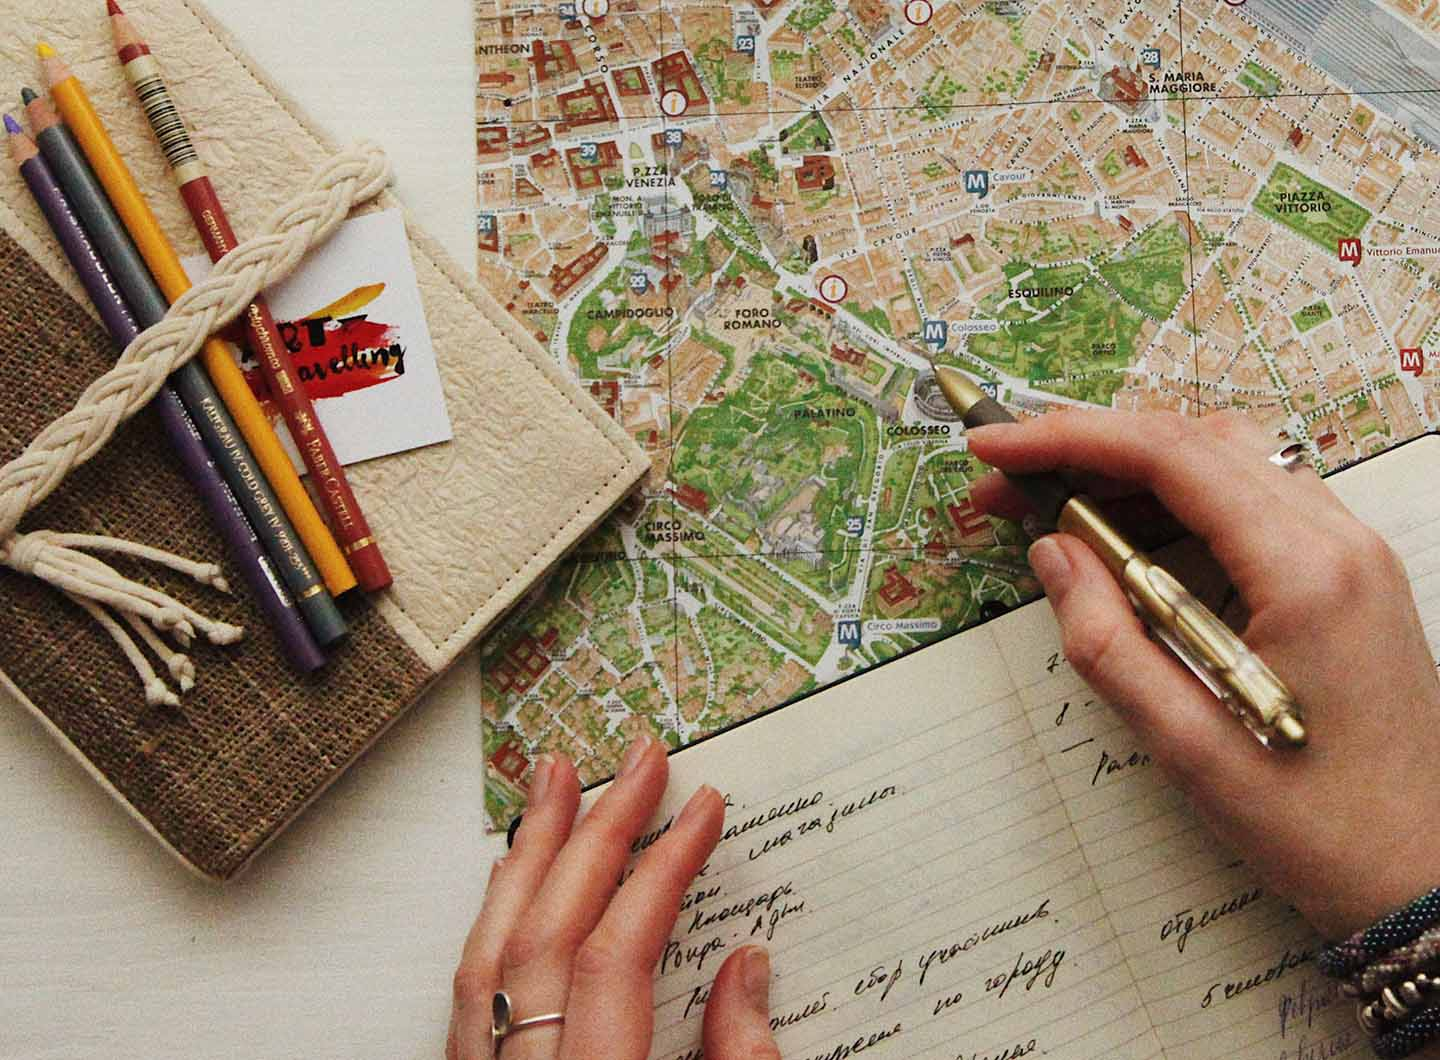 Image of a map and notebook